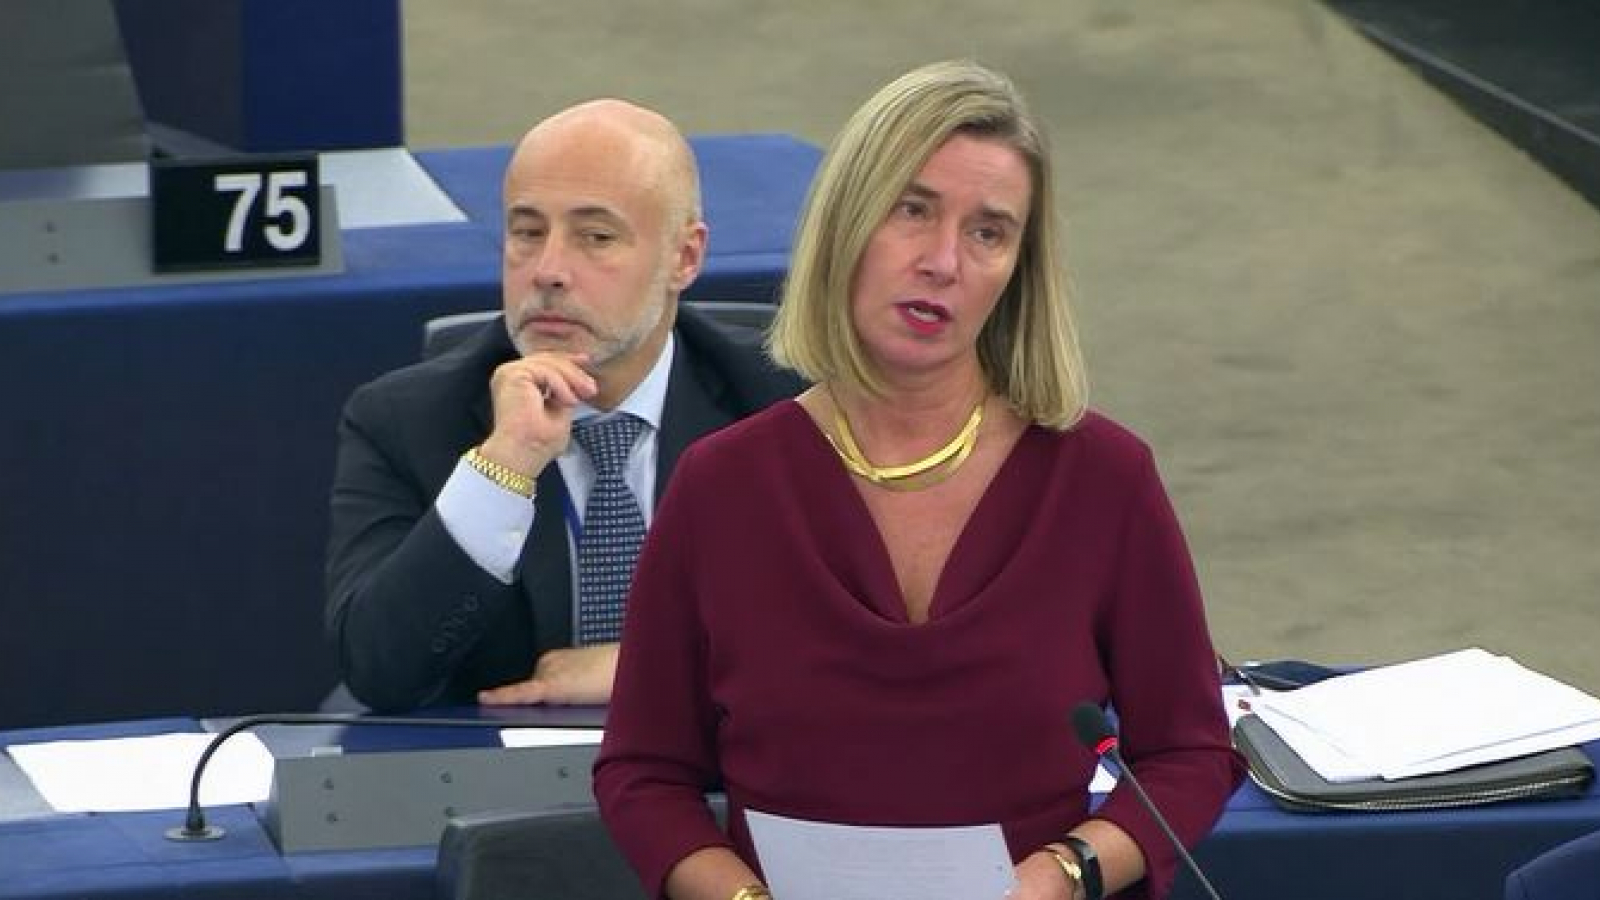 Federica Mogherini at the European Parliament plenary debate on the situation in the broader Middle East region, including the crises in Iran, Iraq and Lebanon